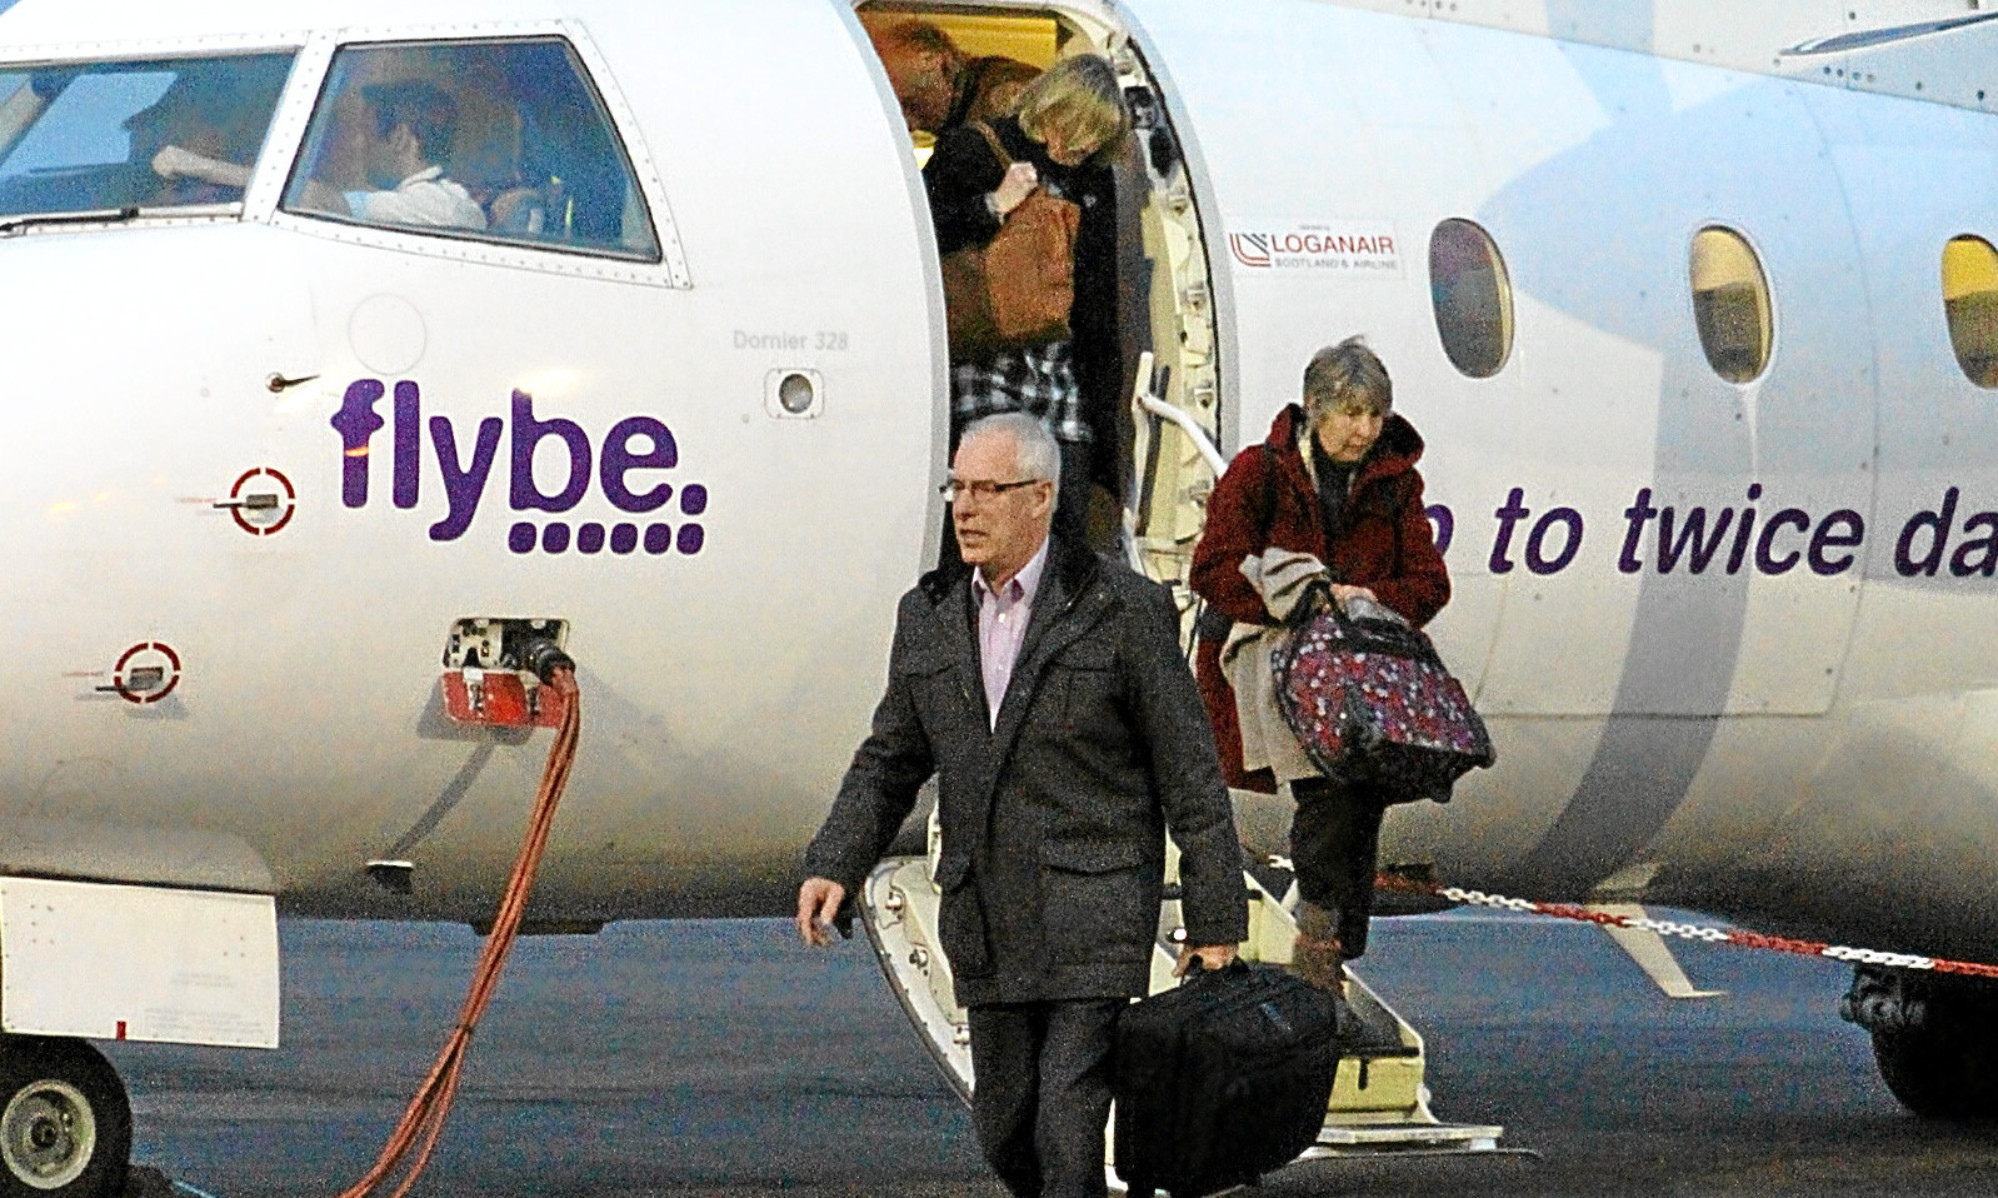 Passengers disembark from a Flybe flight at Dundee Airport